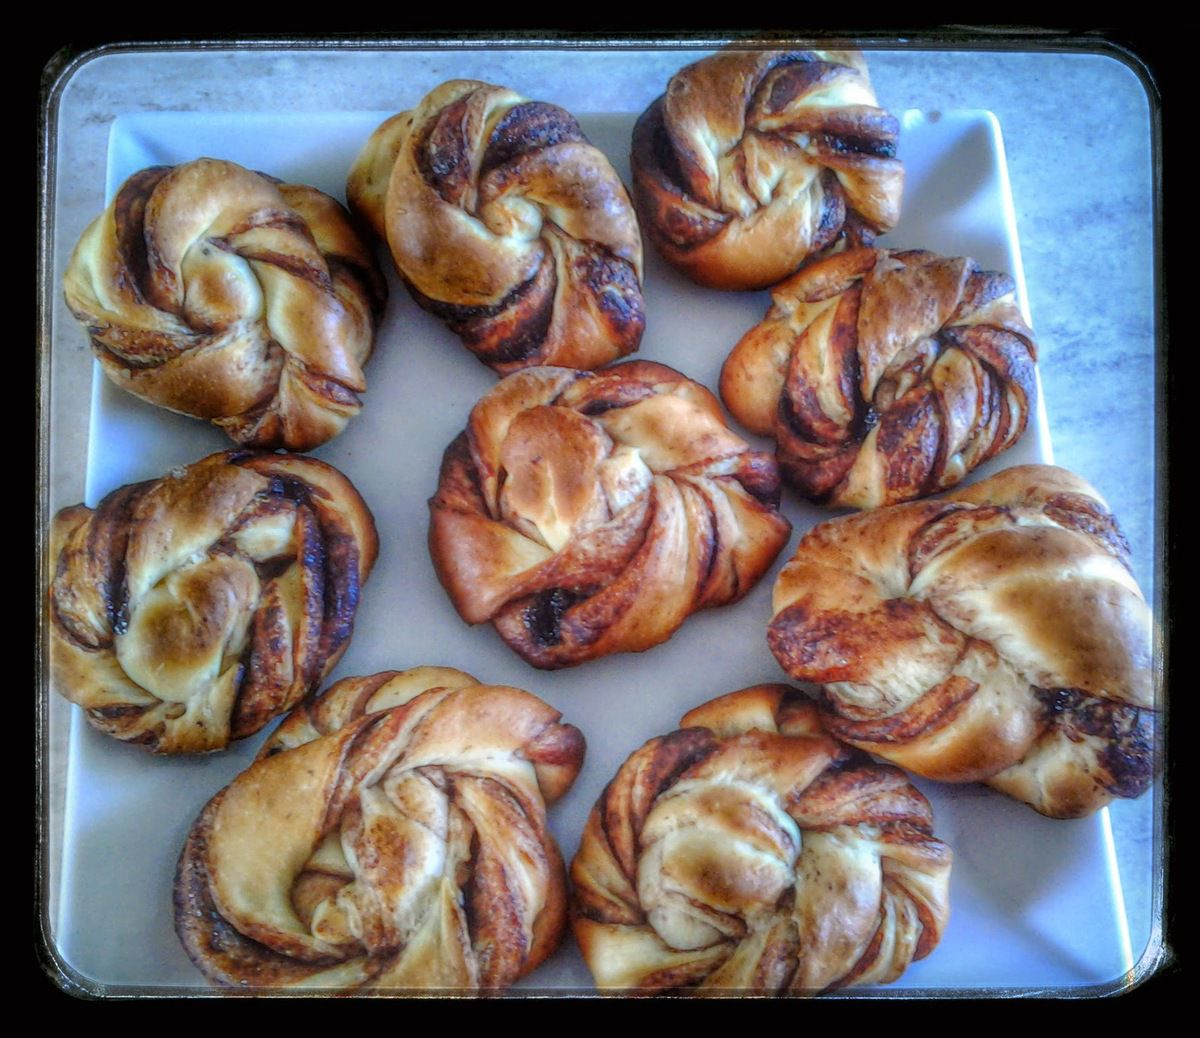 Torsade Danoise au thermomix ou kitchenaid